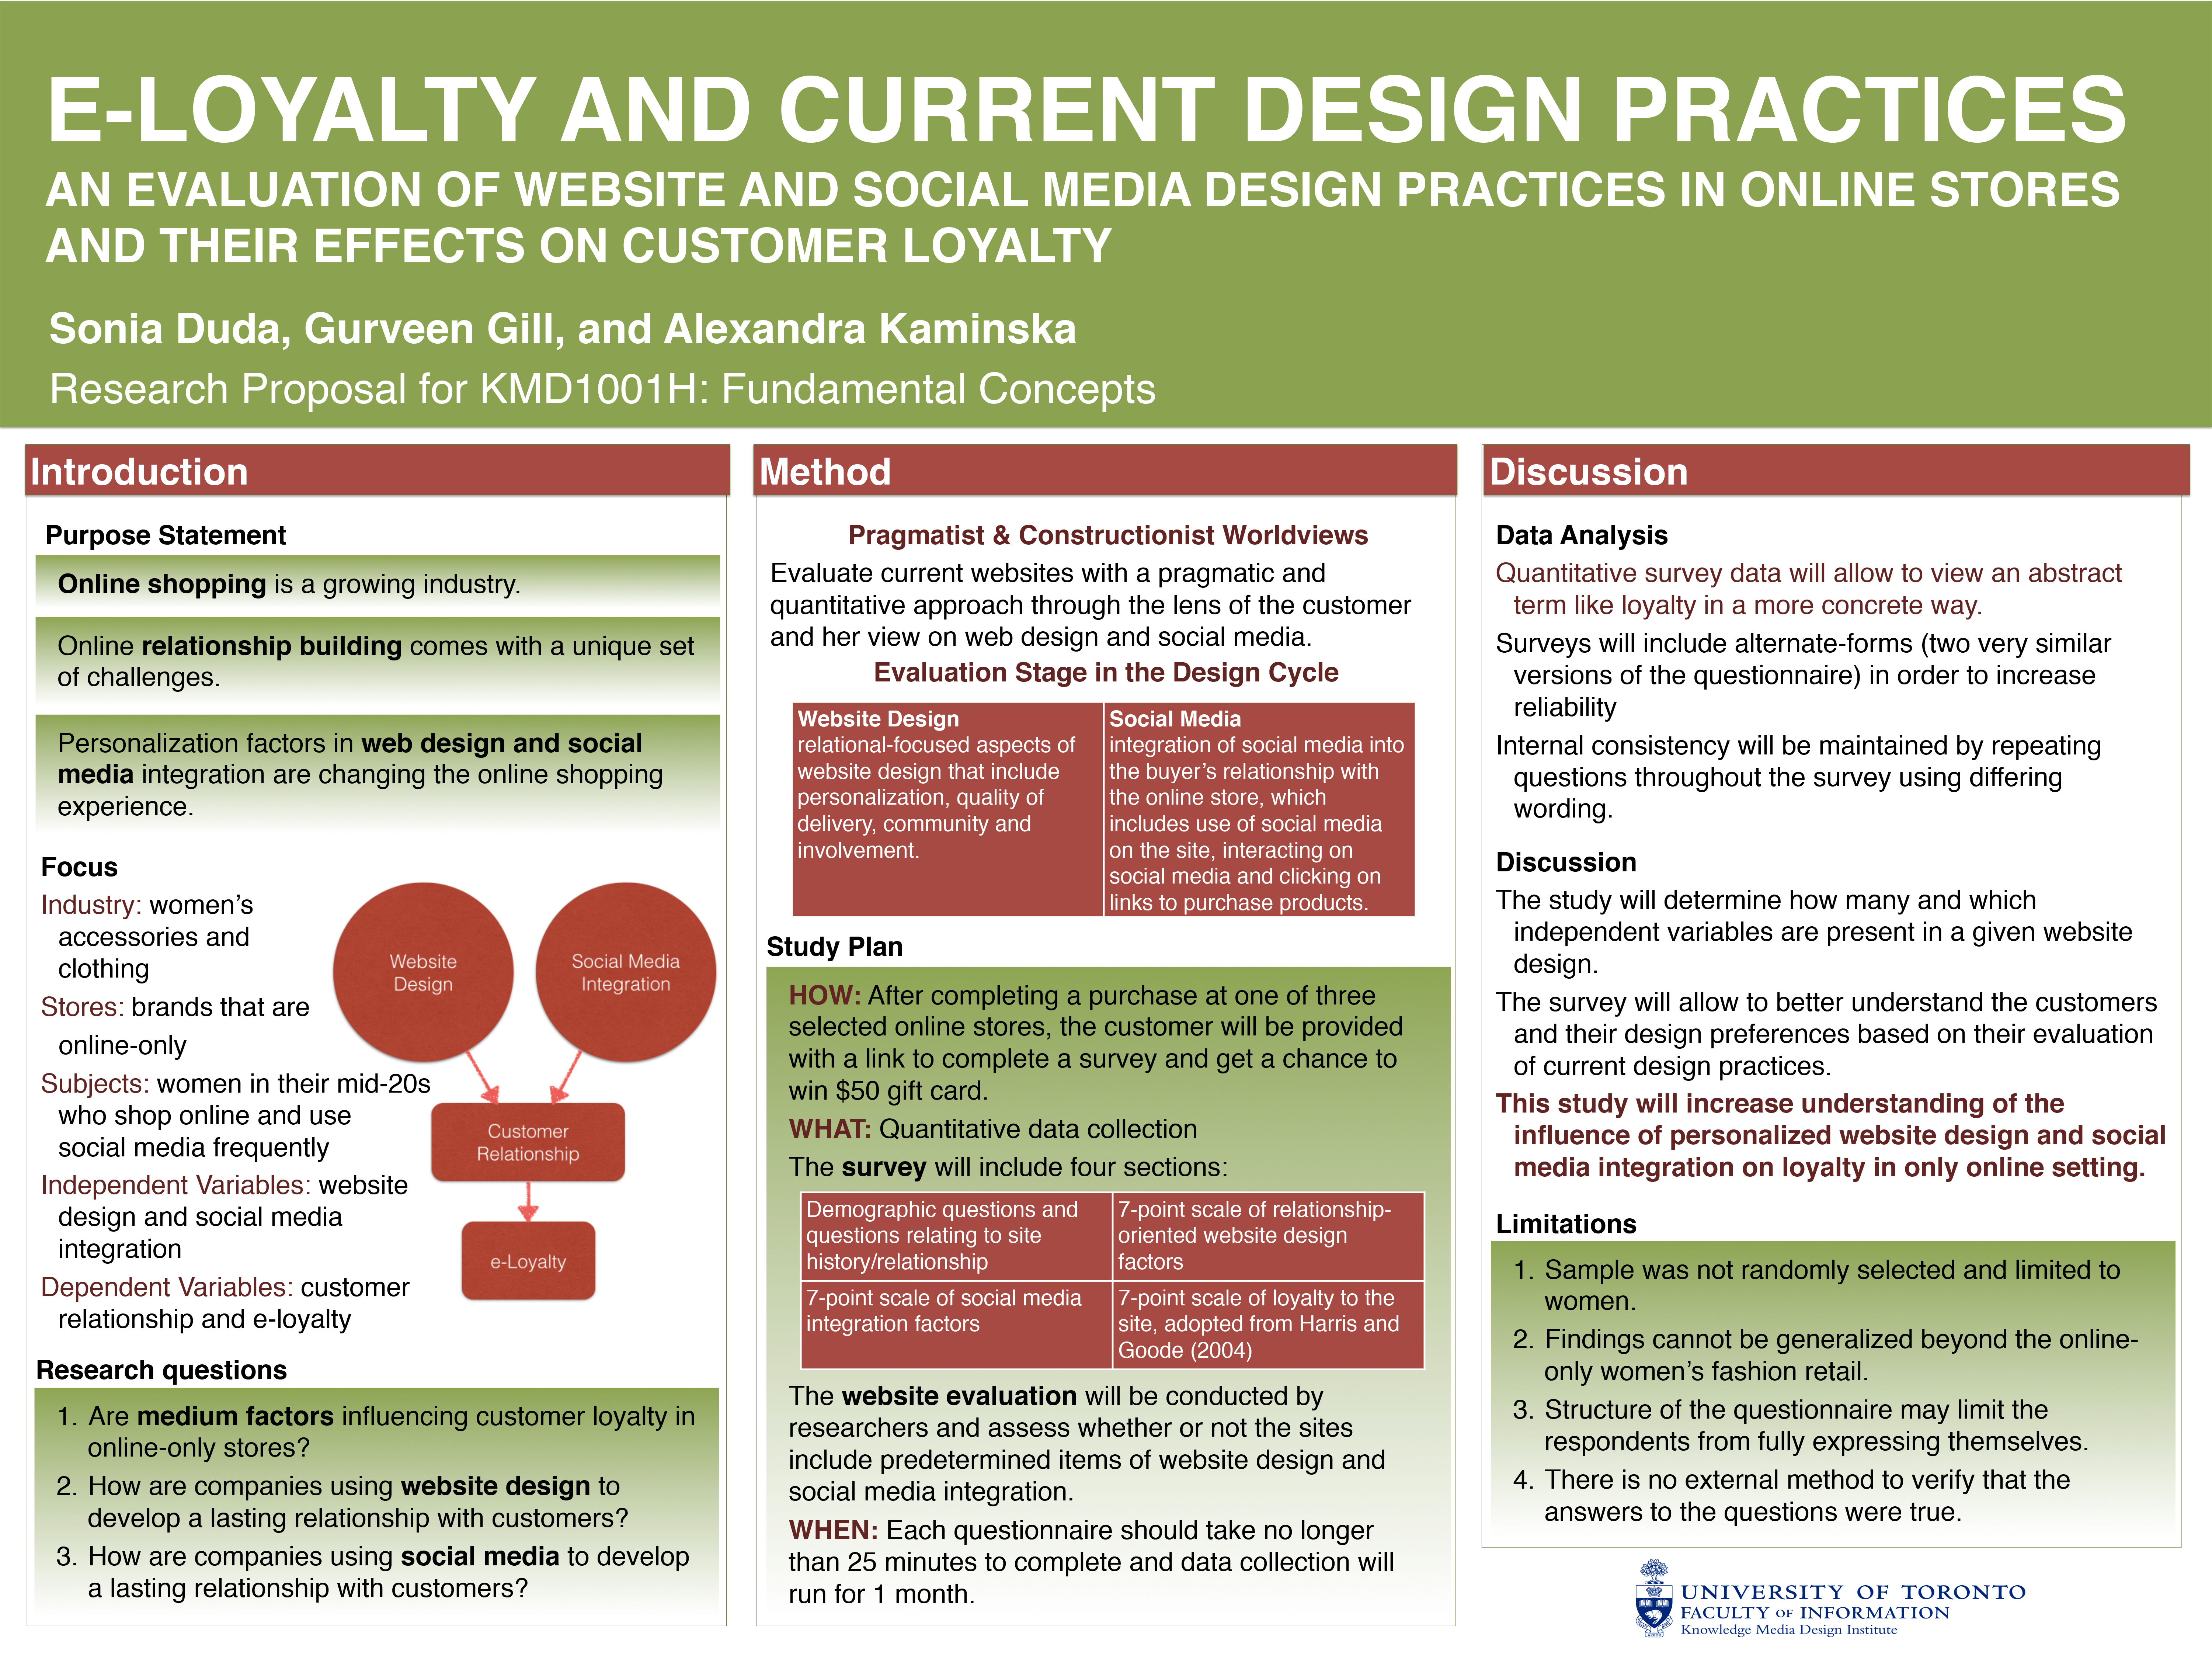 Poster design questionnaire -  E Loyalty And Current Design Practices By Sonia Duda Gurveen Gill And Alexandra Kaminska